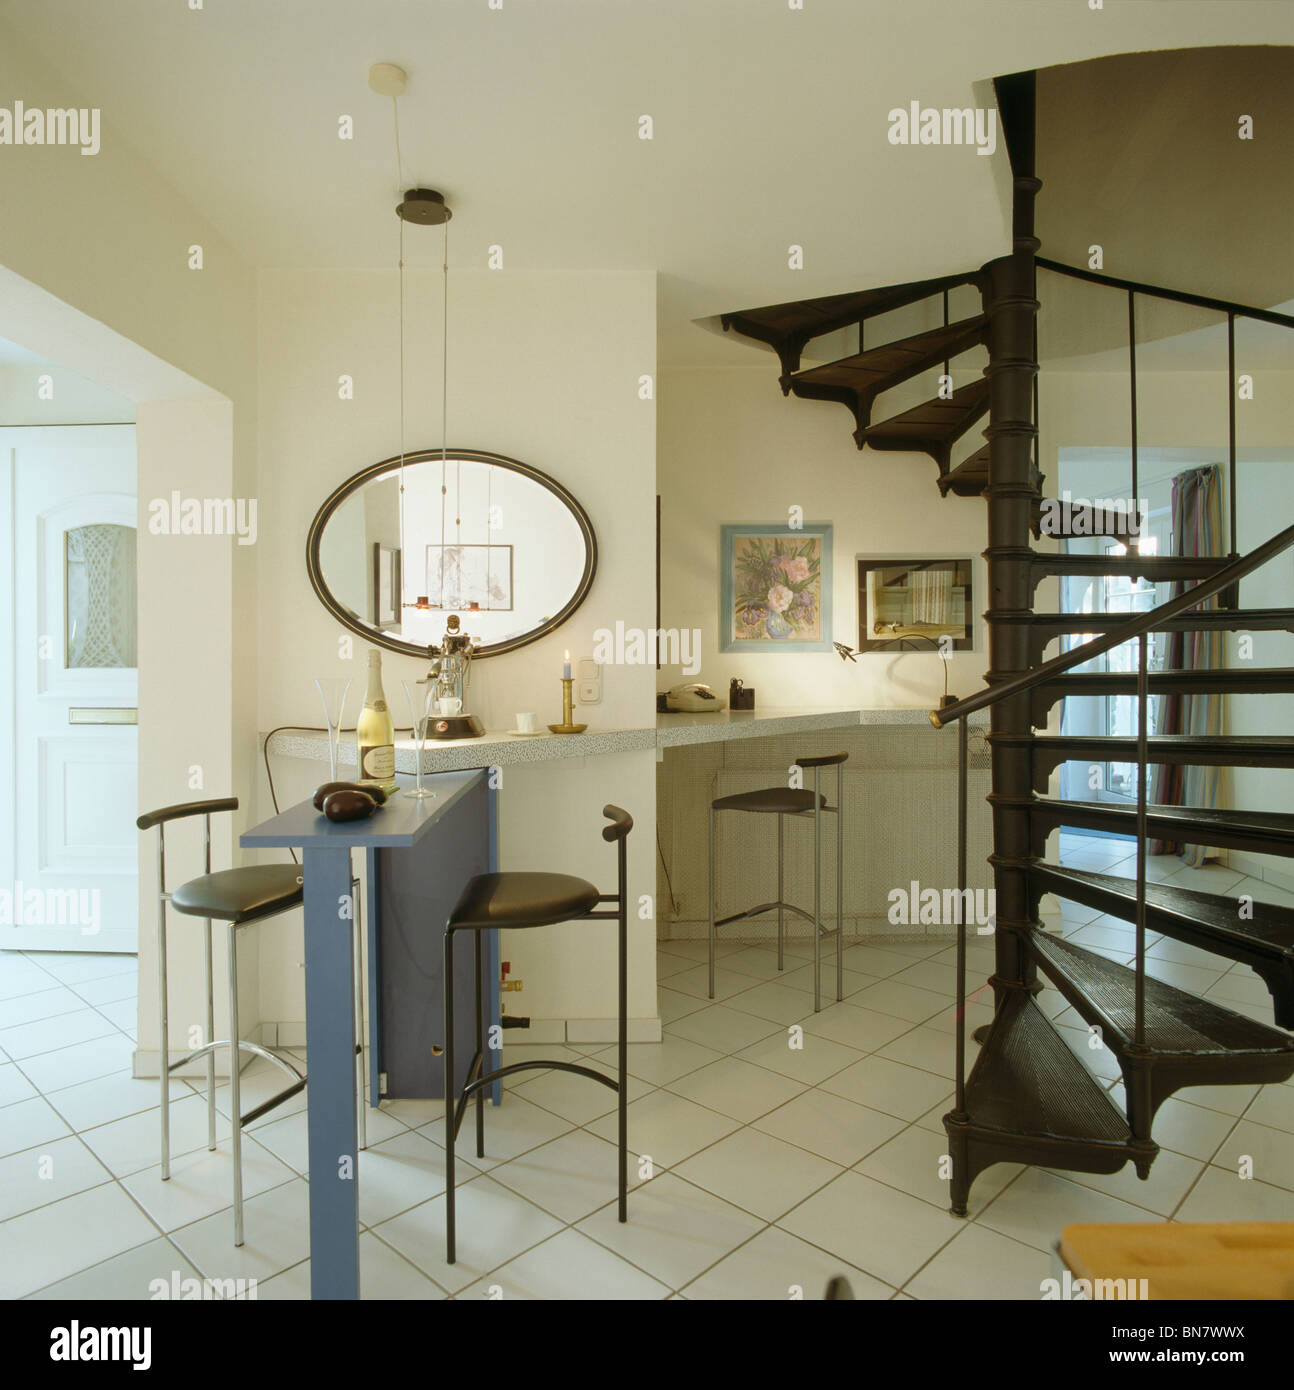 Black Spiral Staircase And White Tiled Flooring In Modern Open Plan Kitchen  With Metal Stools